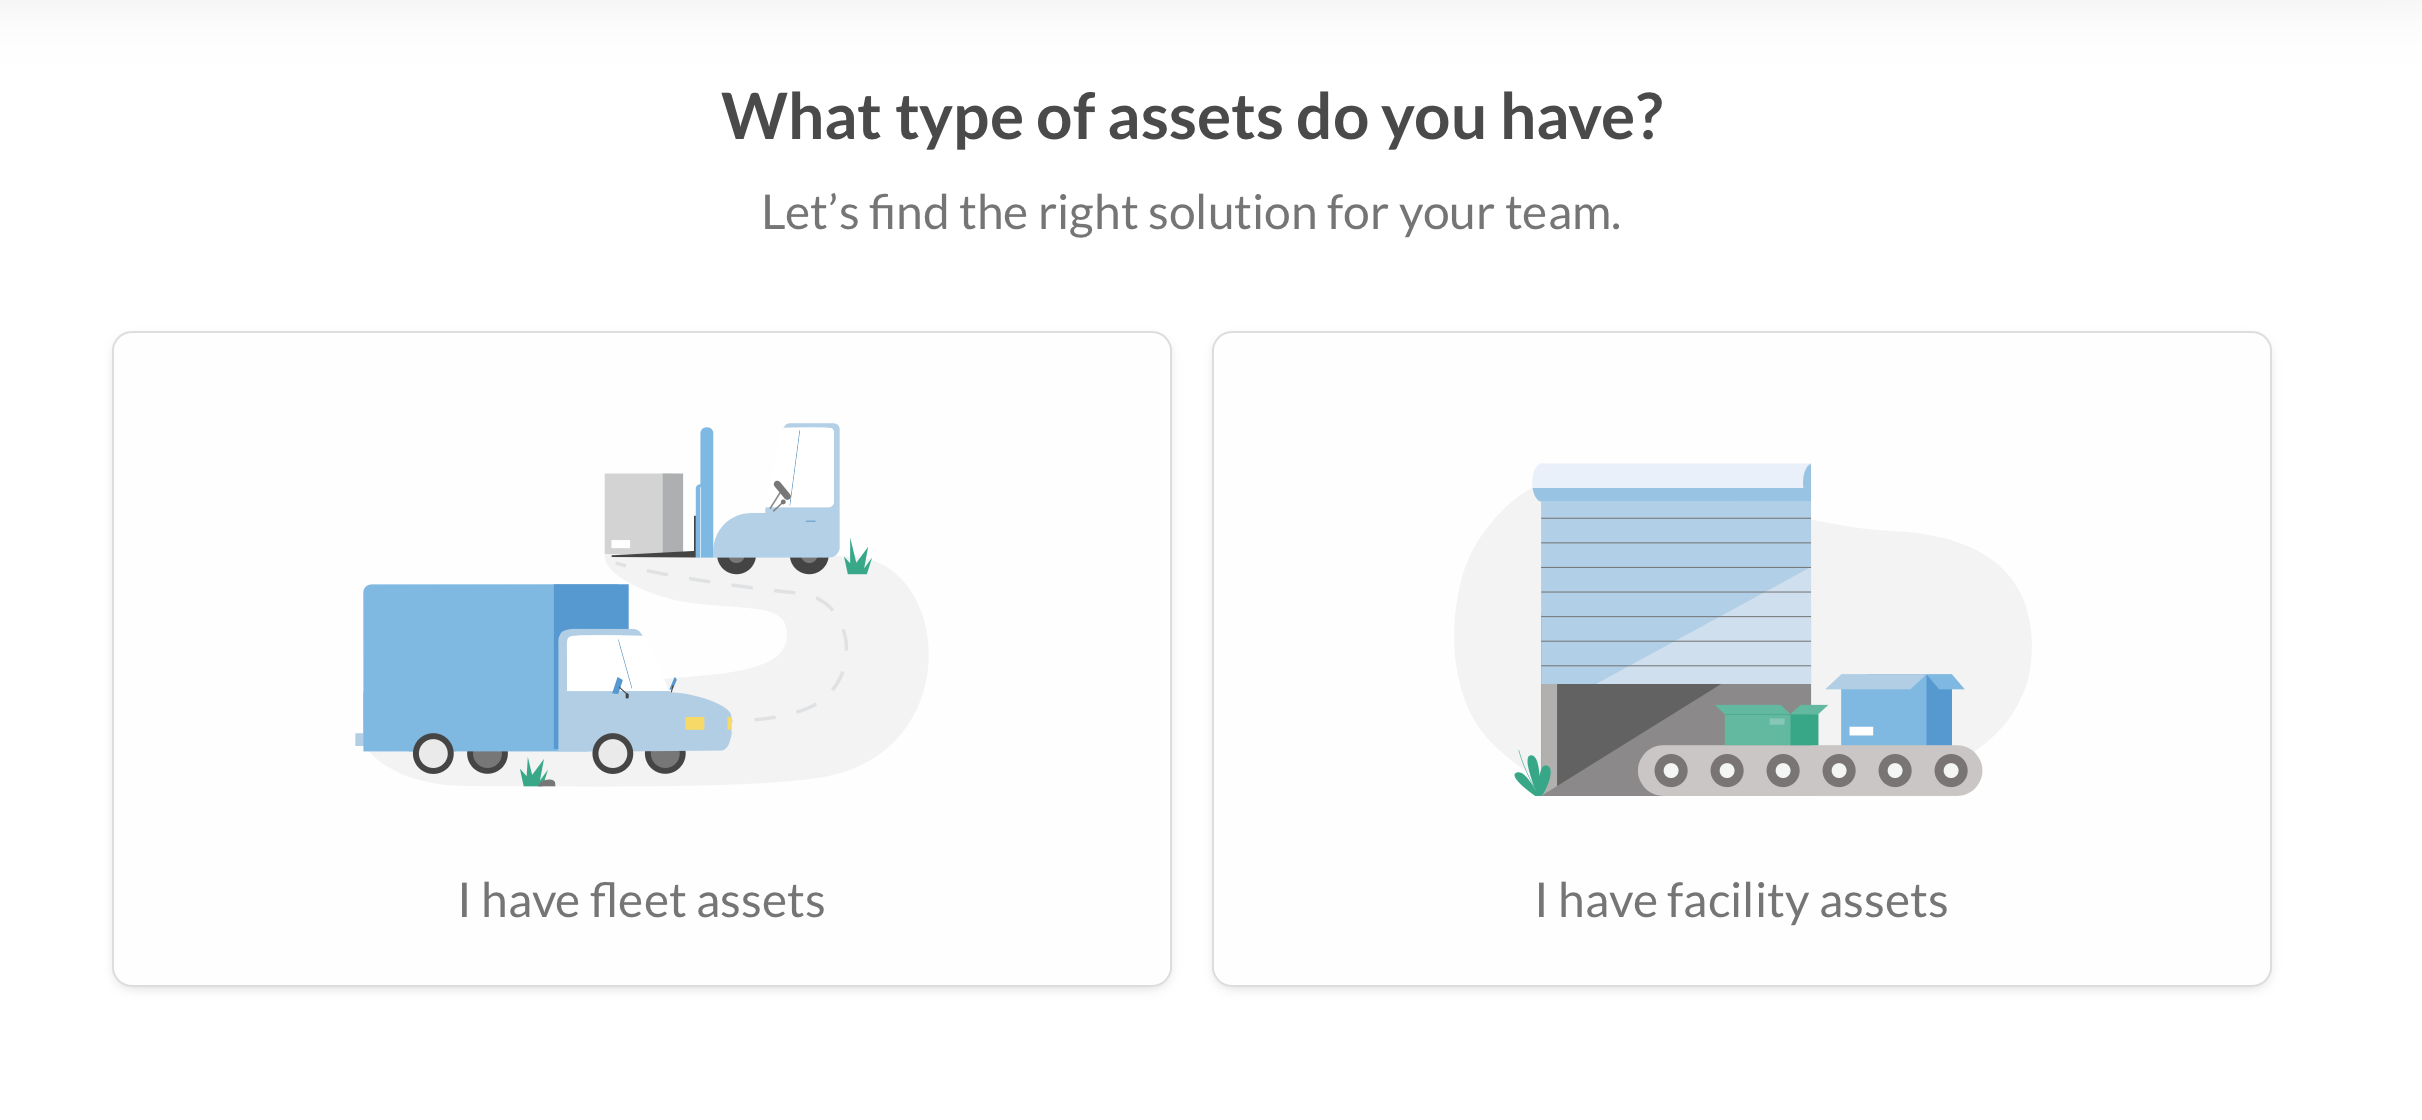 Two buttons with images asking which type of asset a user has